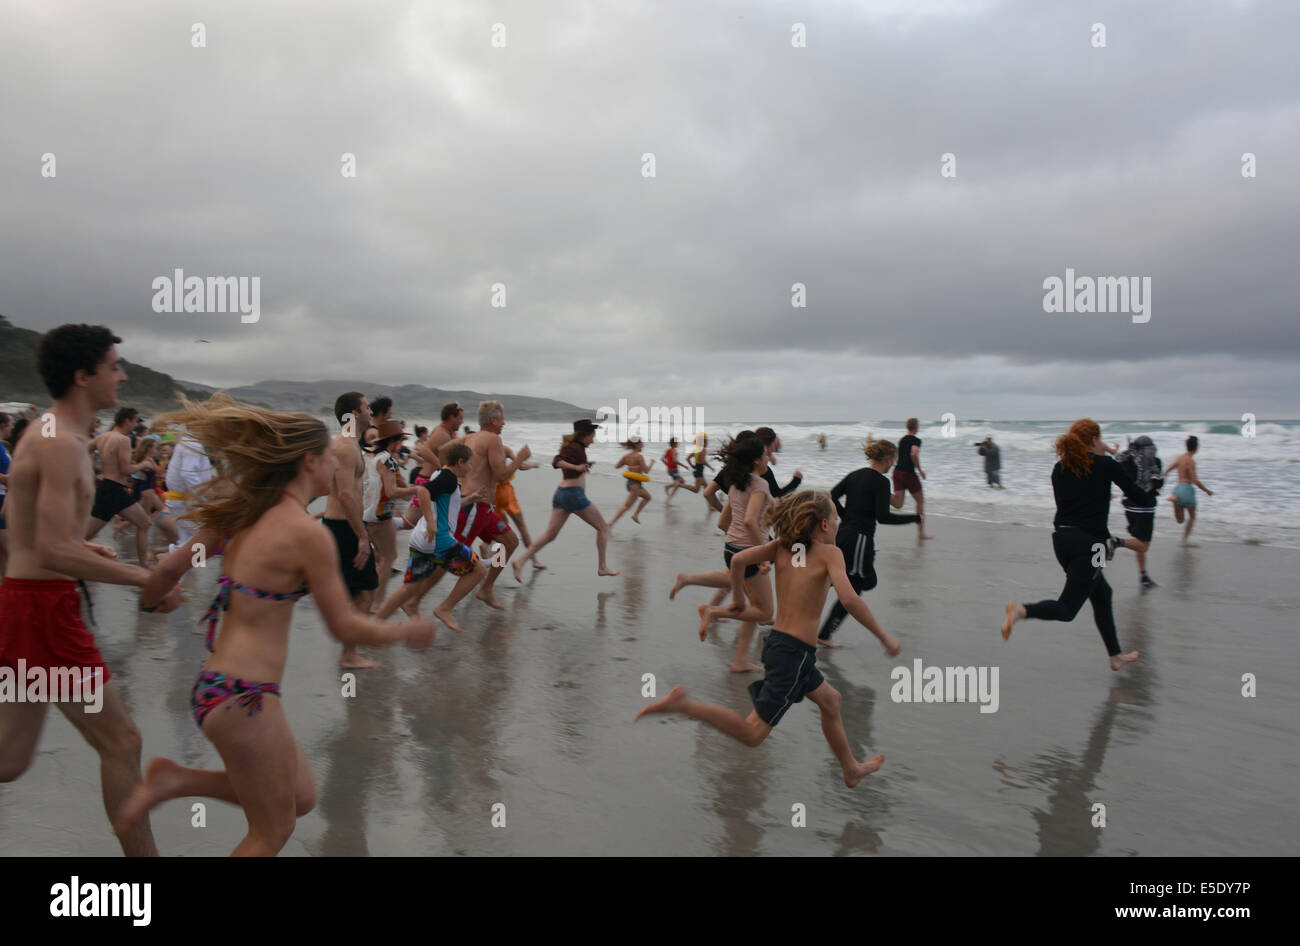 People running into waters at Dunedin's annual midwinter Polar Plunge, St Clair Esplanade - Stock Image